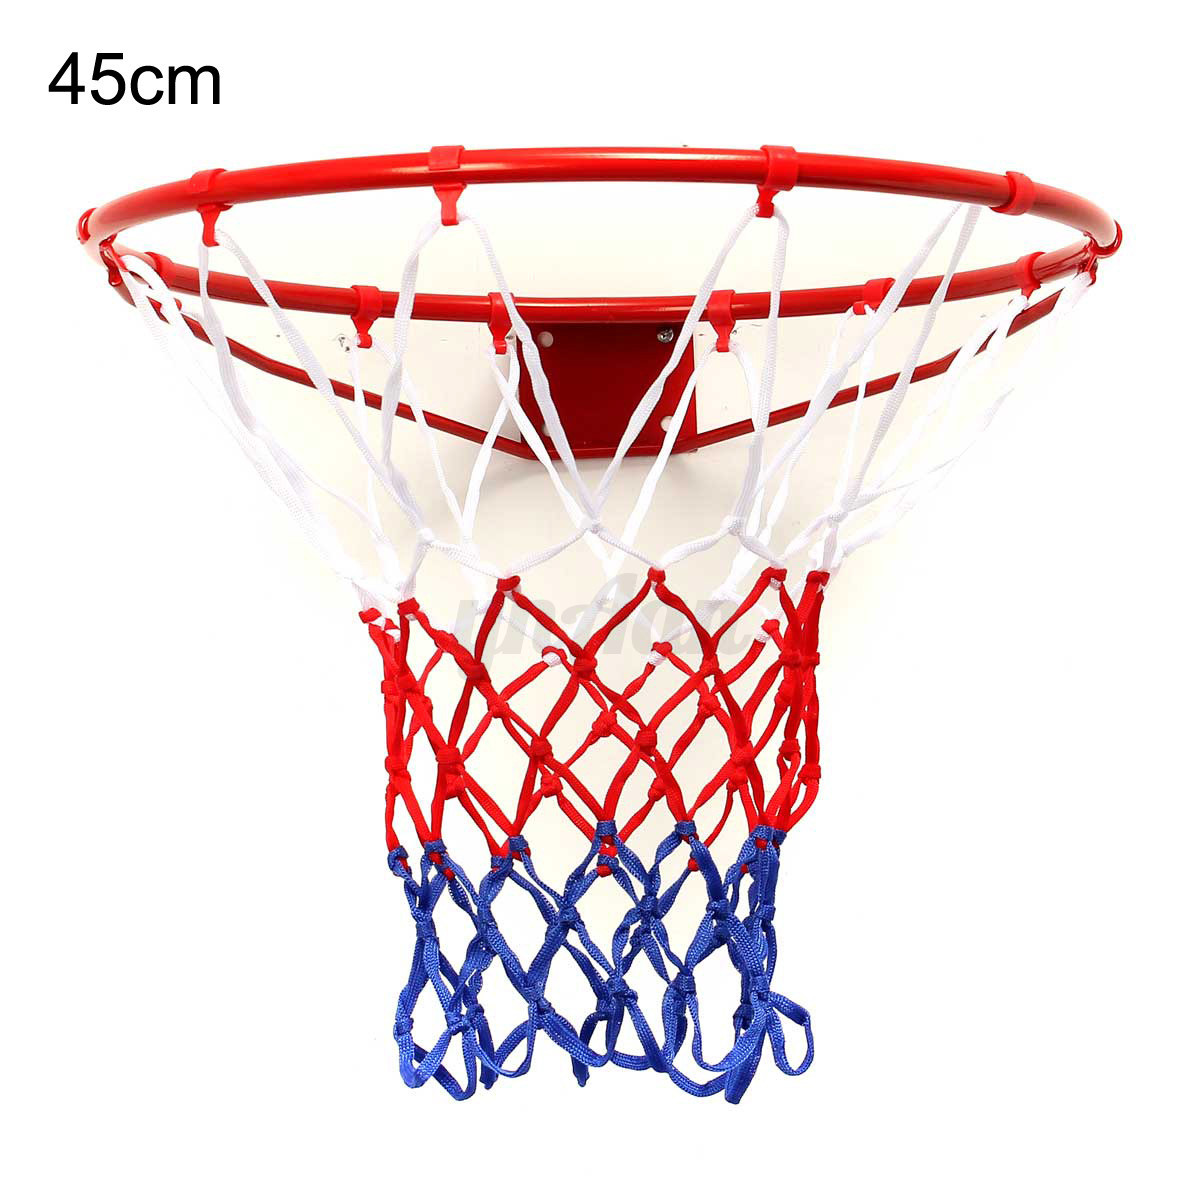 32cm 45cm paniers de basket basketball mural articles de sport jouet ext rieur ebay. Black Bedroom Furniture Sets. Home Design Ideas